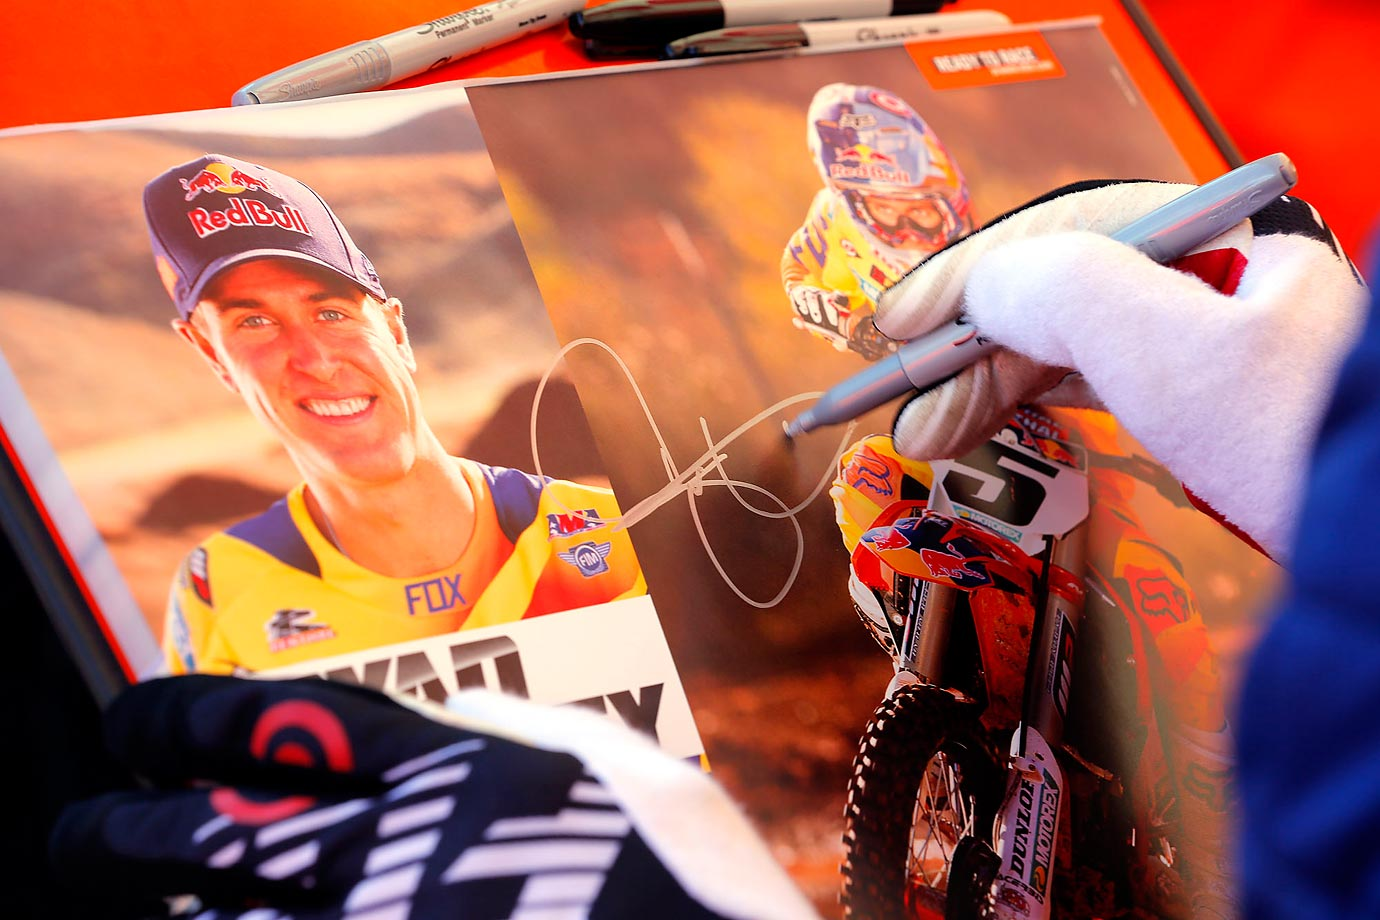 Dungey signs posters for fans at his pit during an autograph session.